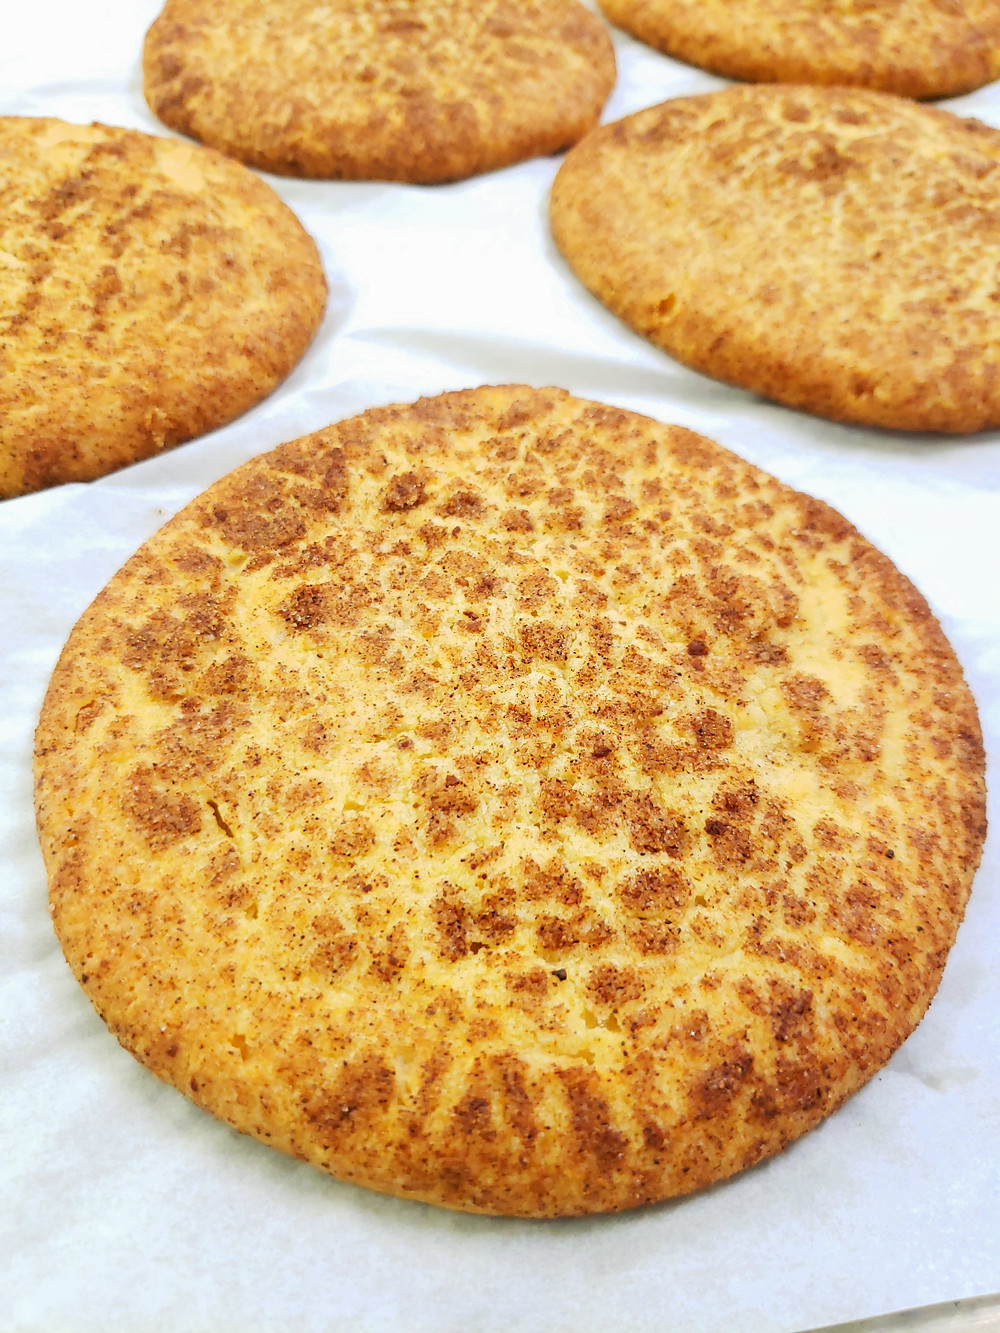 A sugar cookie tossed in a blend of chai spices